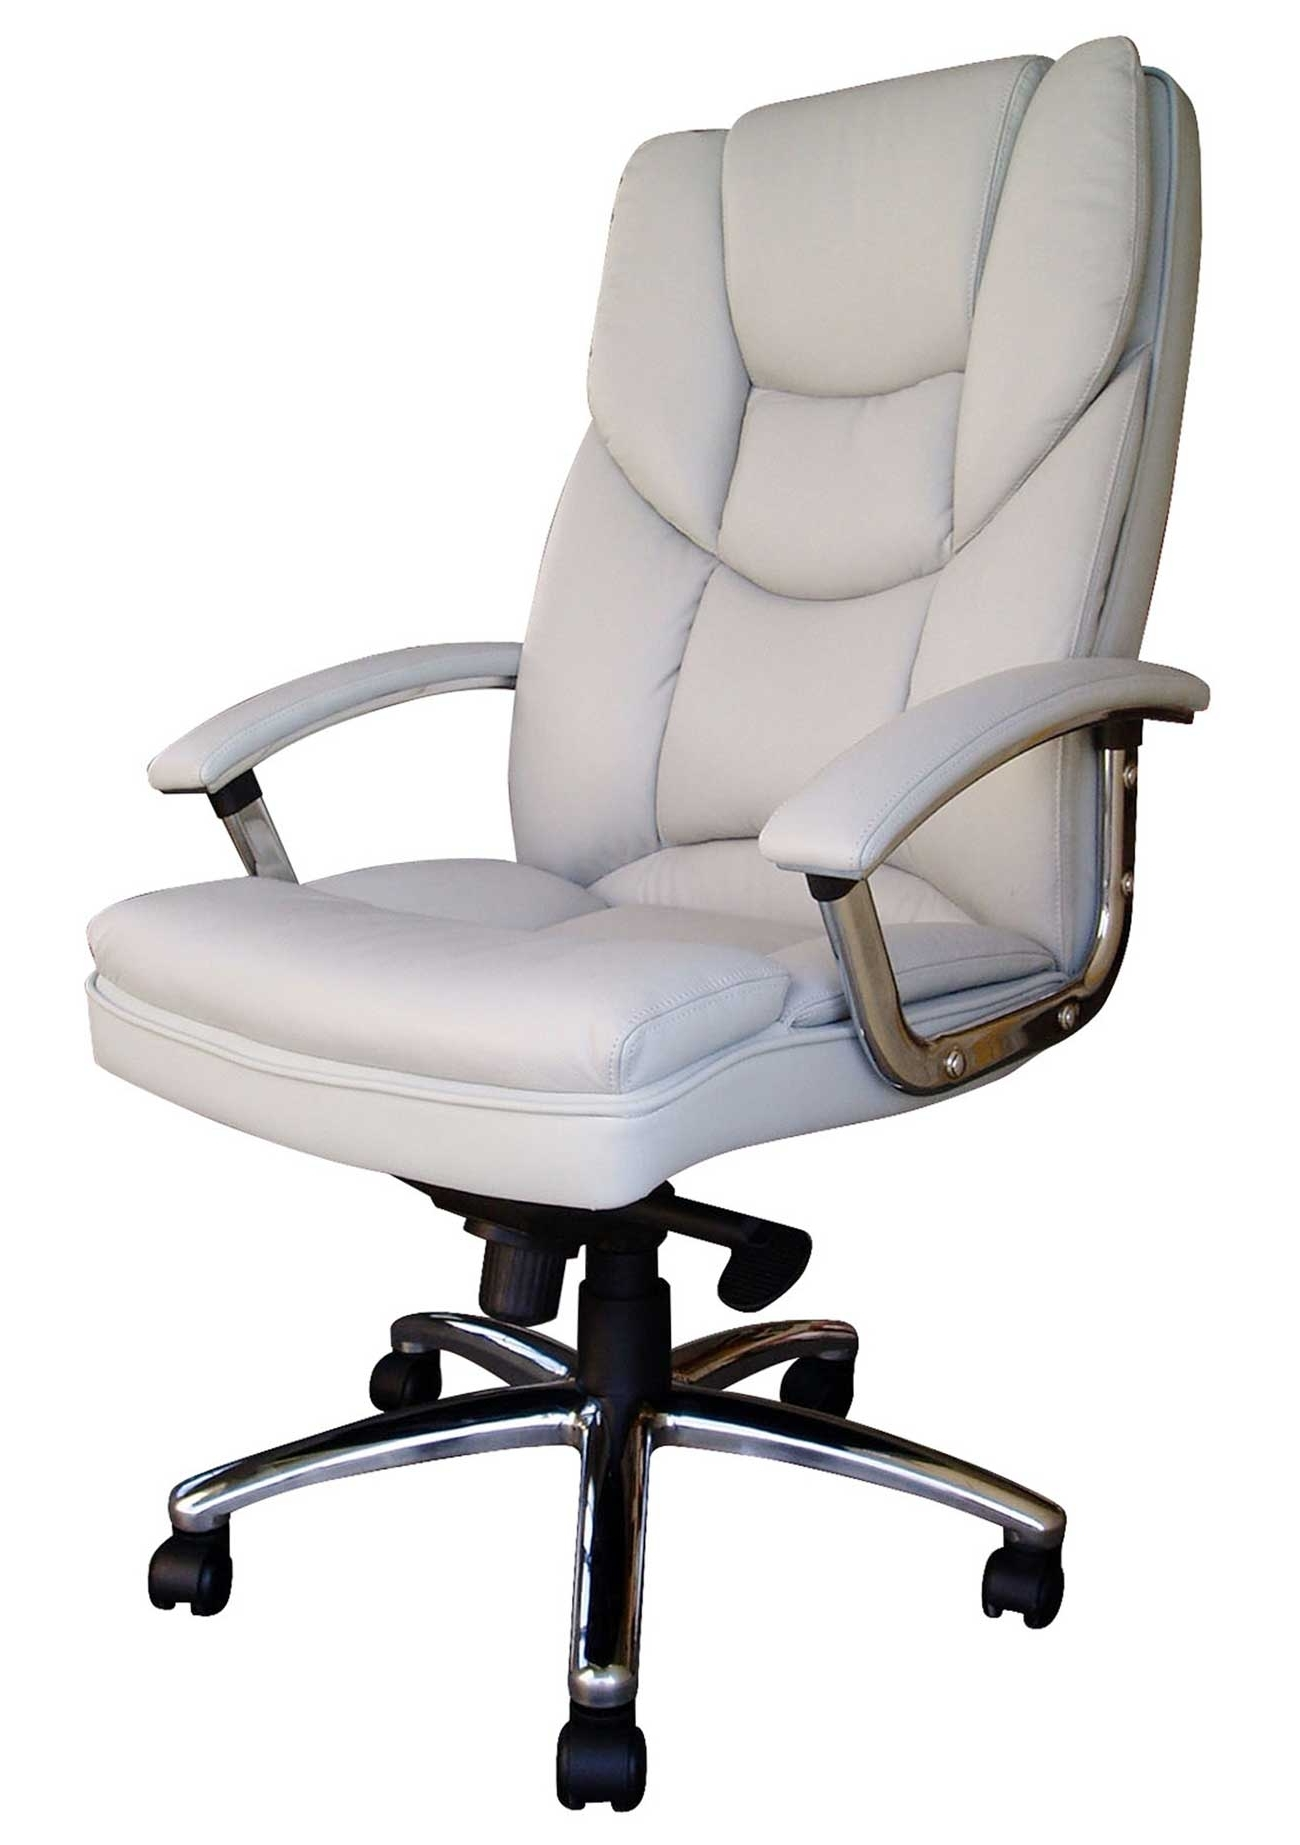 Famous High End Executive Office Chairs With Funiture: White Office Furniture Ideas Using White Leather Swivel (View 6 of 20)